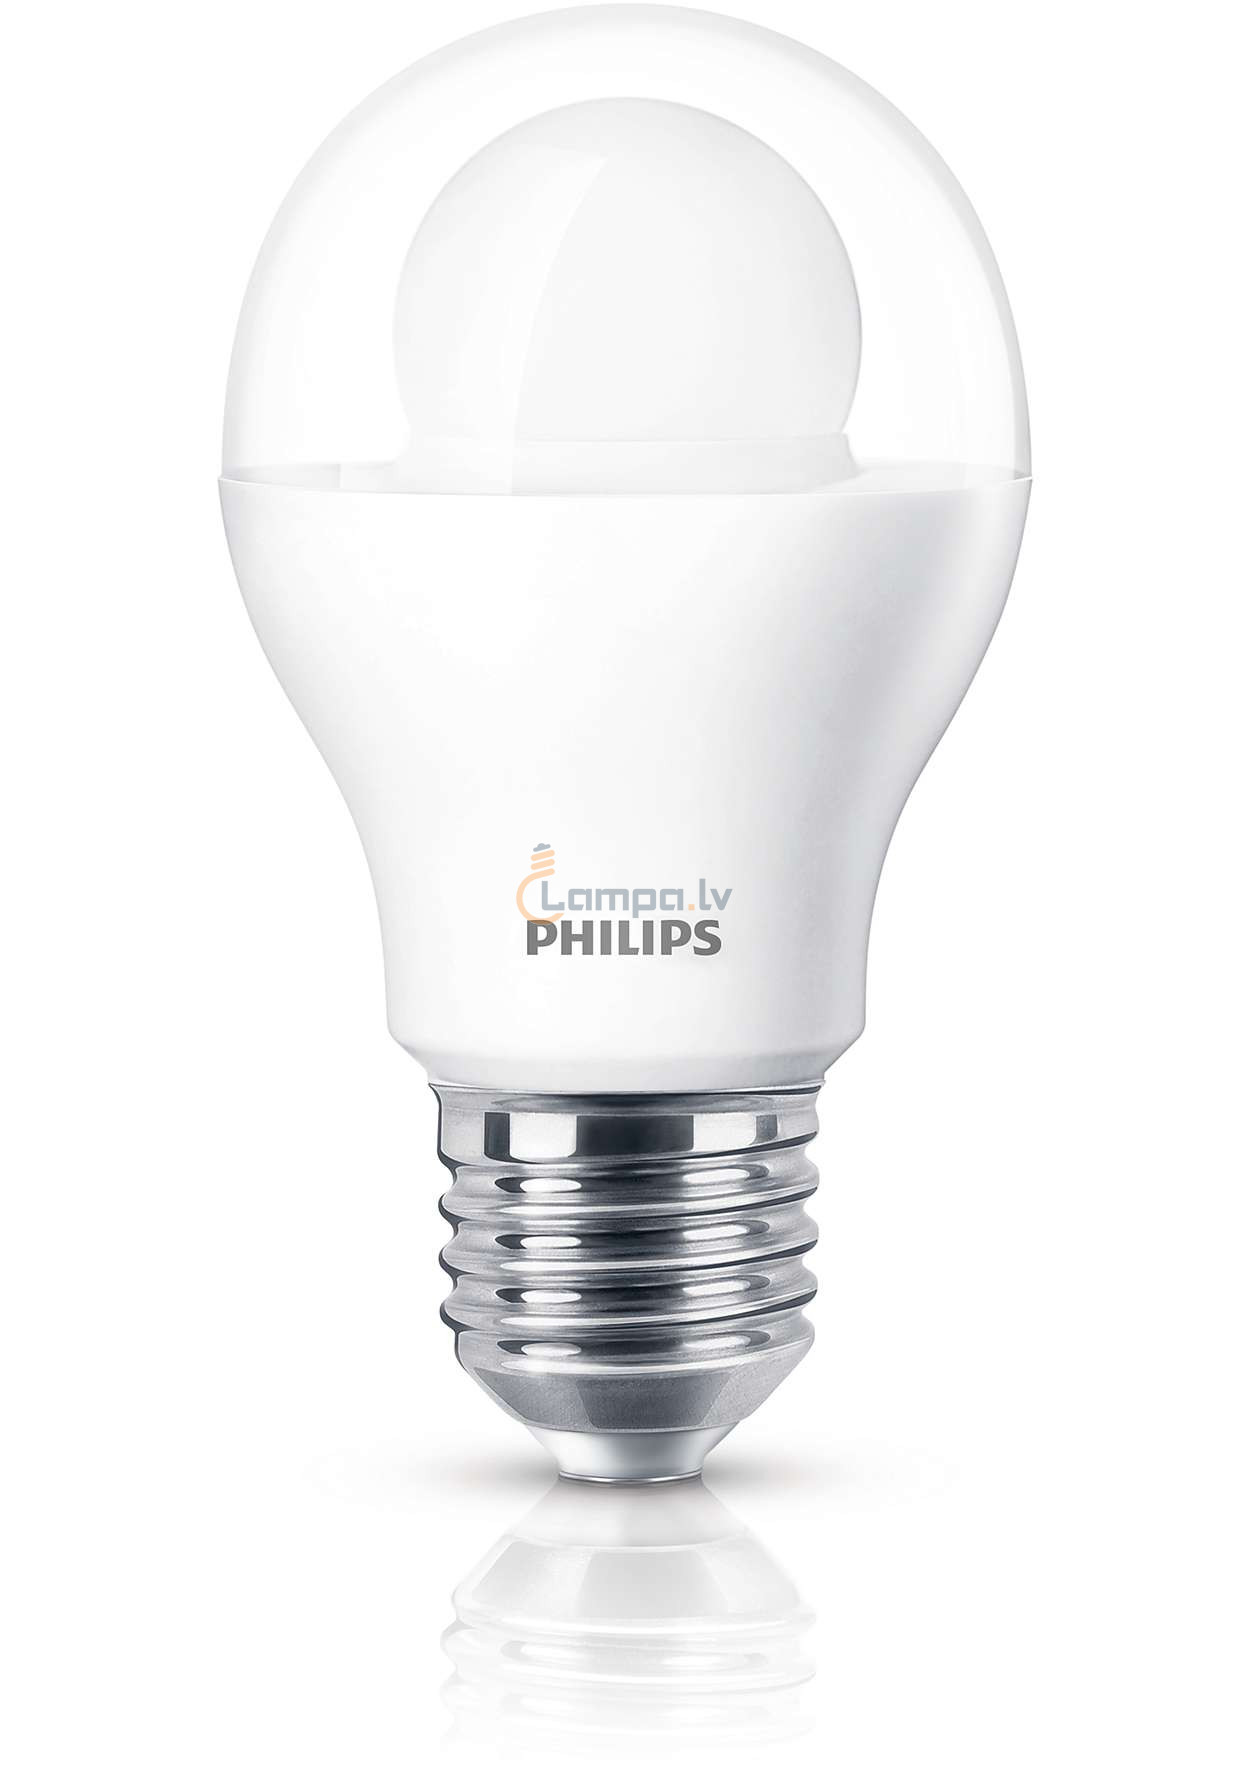 philips led lampe 8 32w 827 e27 2700k a60 230v ww clear not dimmable. Black Bedroom Furniture Sets. Home Design Ideas